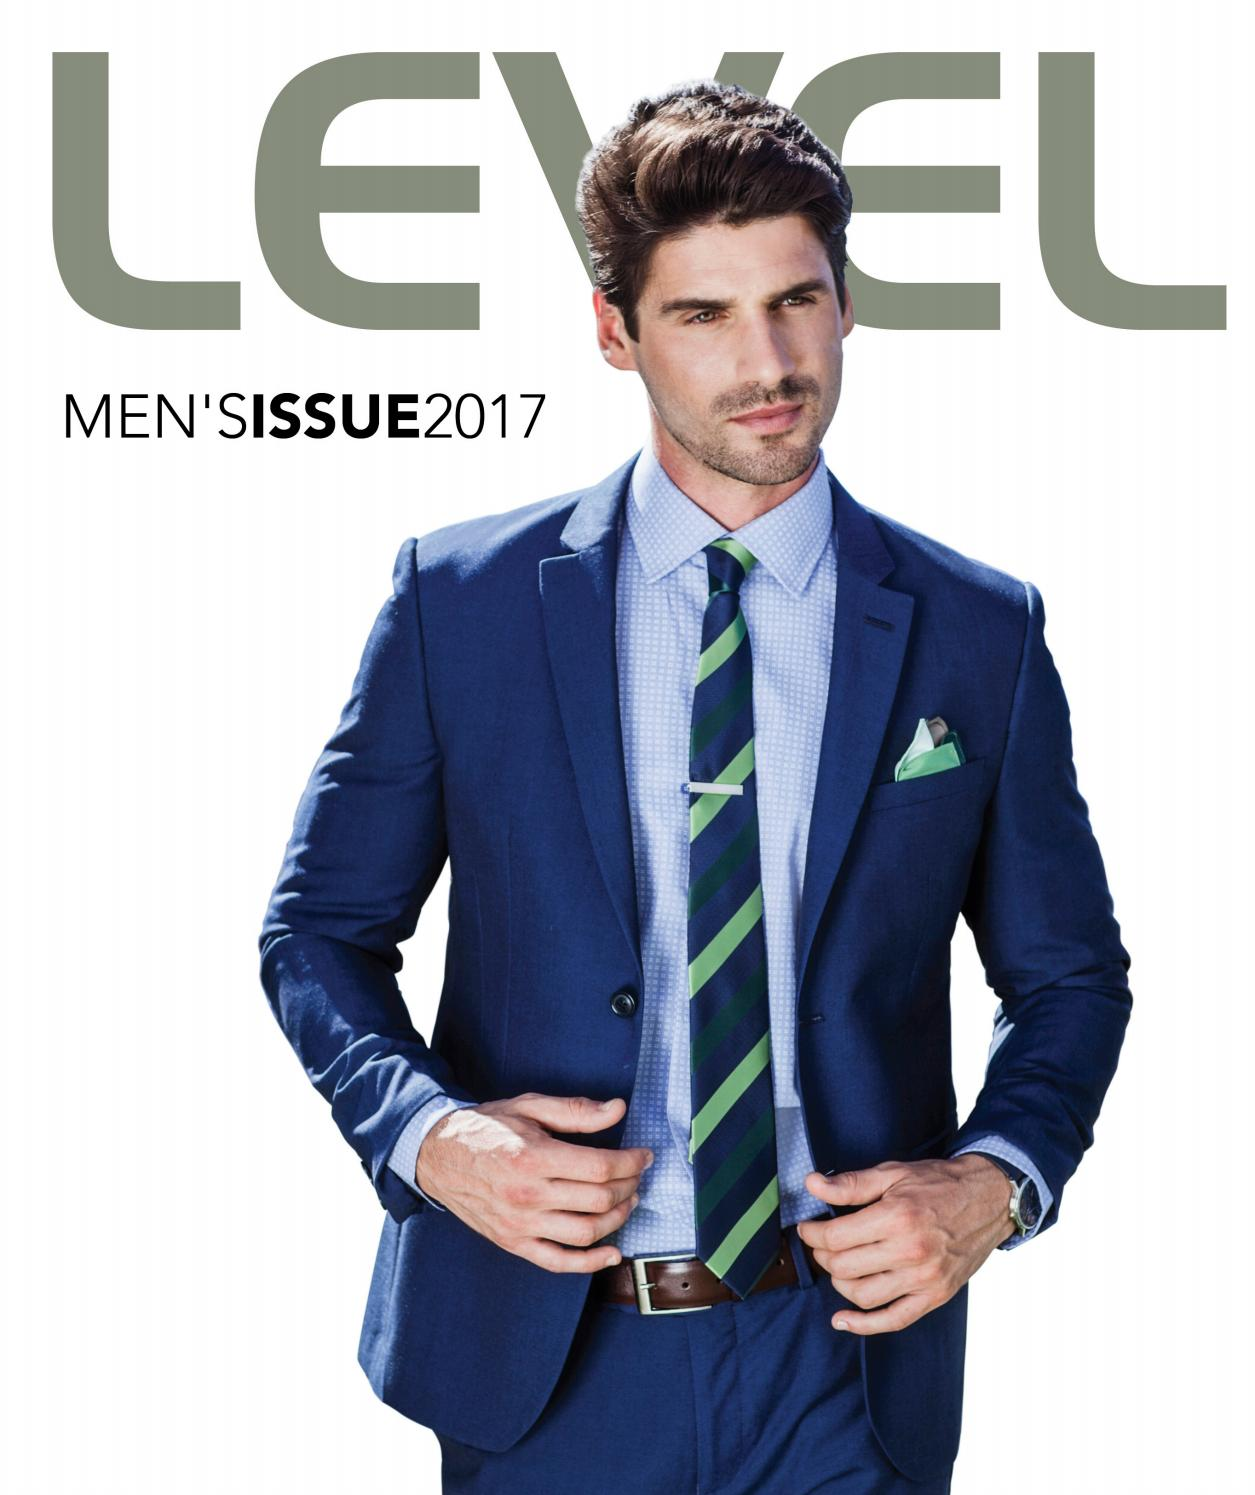 ed76afb64 57 Mens Issue 2017 by Revista Level - issuu